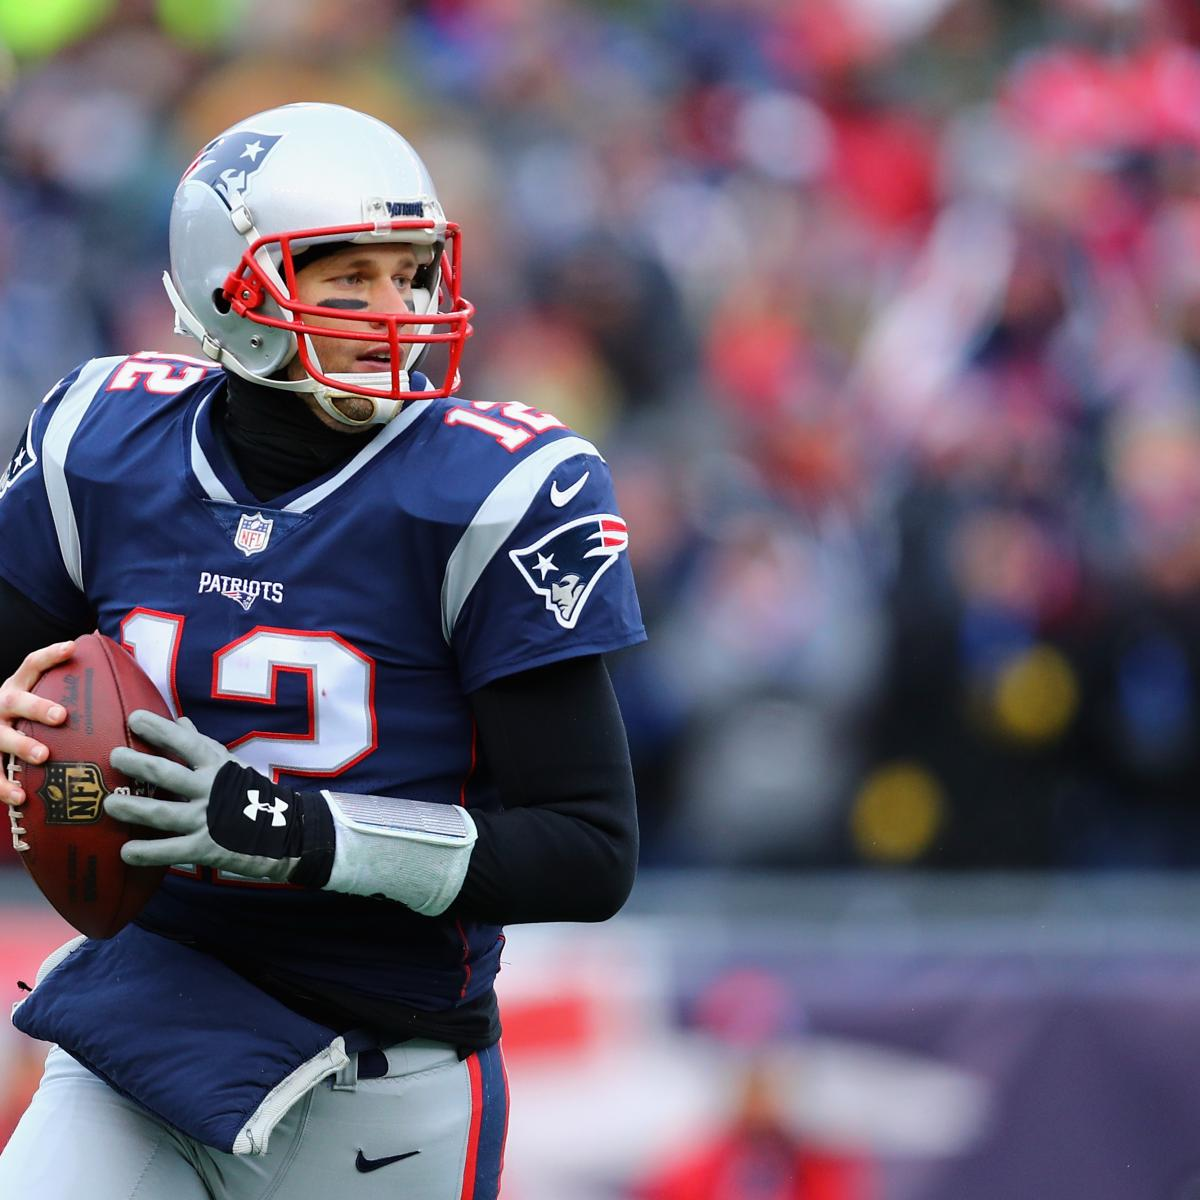 Titans vs. Patriots: Updated Odds, Stat Predictions for 2018 AFC Divisional Game